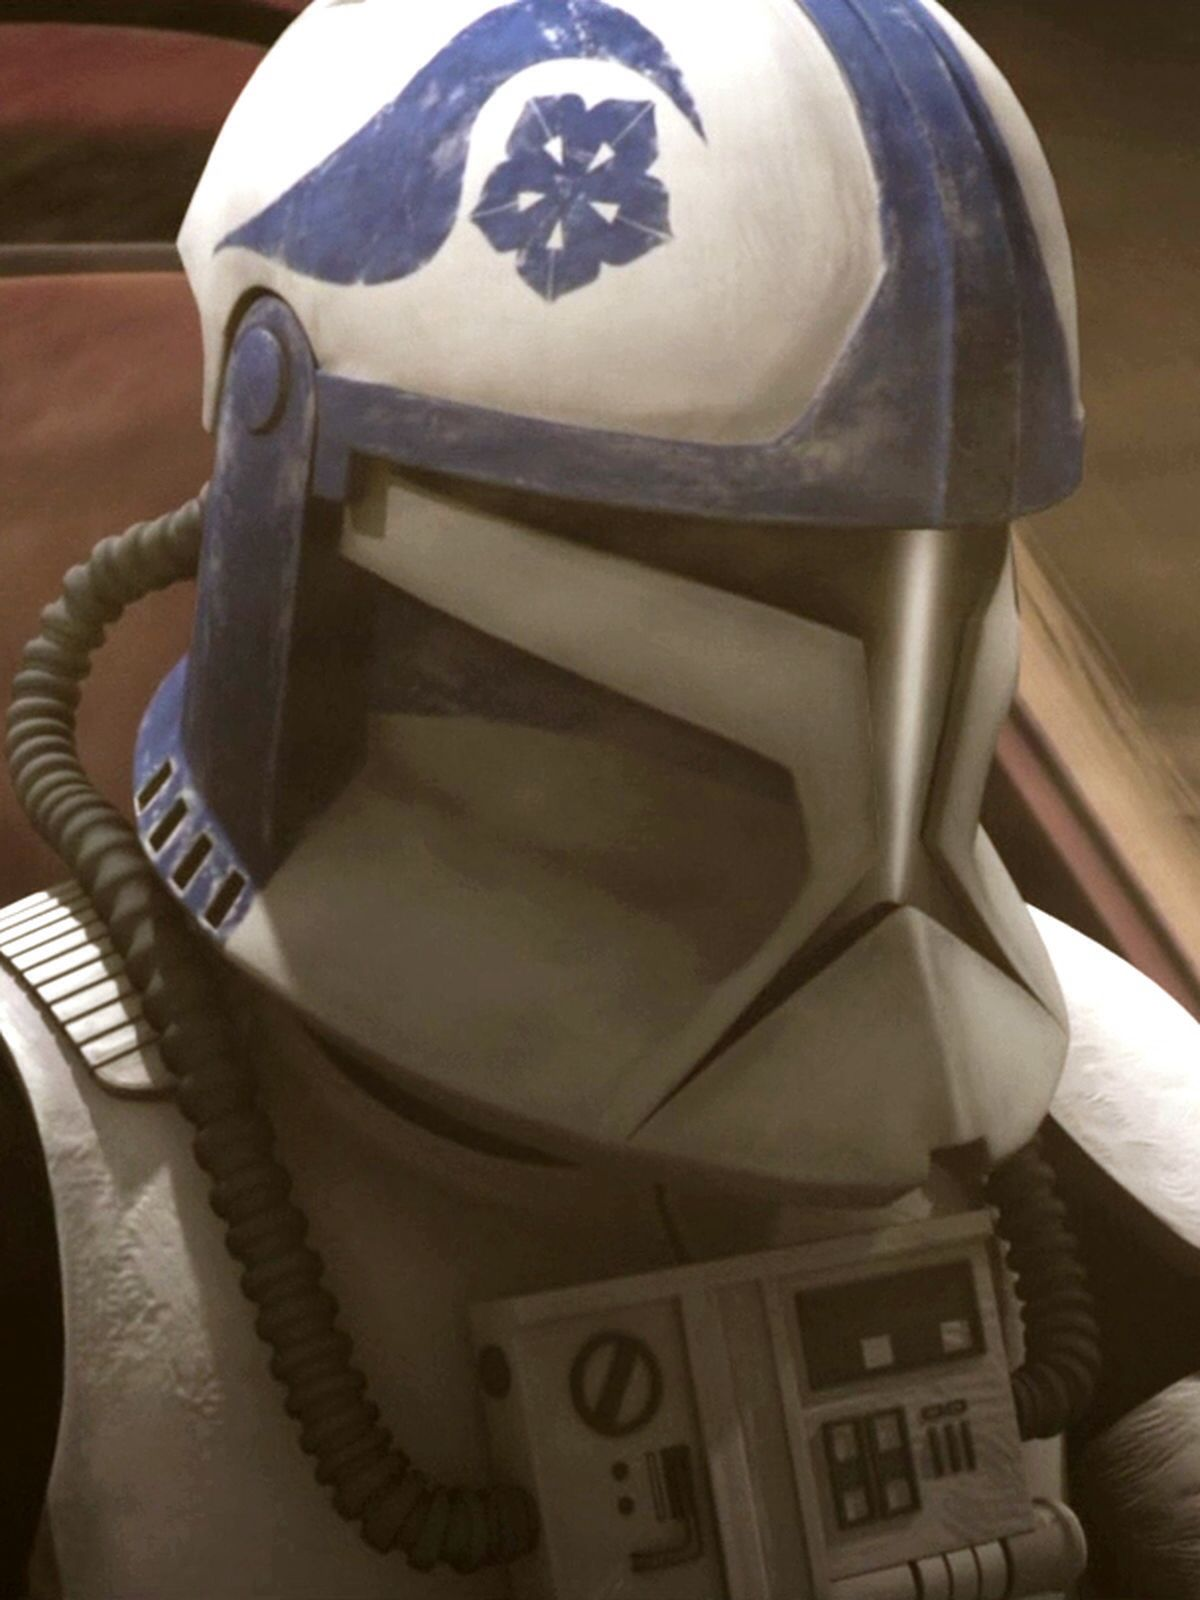 """Kickback is a clone trooper pilot who served in the Galactic Republic's Navy. Kickback served under the call sign of """"Blue Four"""" in Blue Squadron, a Republic starfighter unit led by Jedi Commander Ahsoka Tano. Blue Squadron participated in the Battle of Ryloth circa 22 BBY, to destroy Confederate Captain Mar Tuuk's blockade over the Twi'lek planet of Ryloth."""